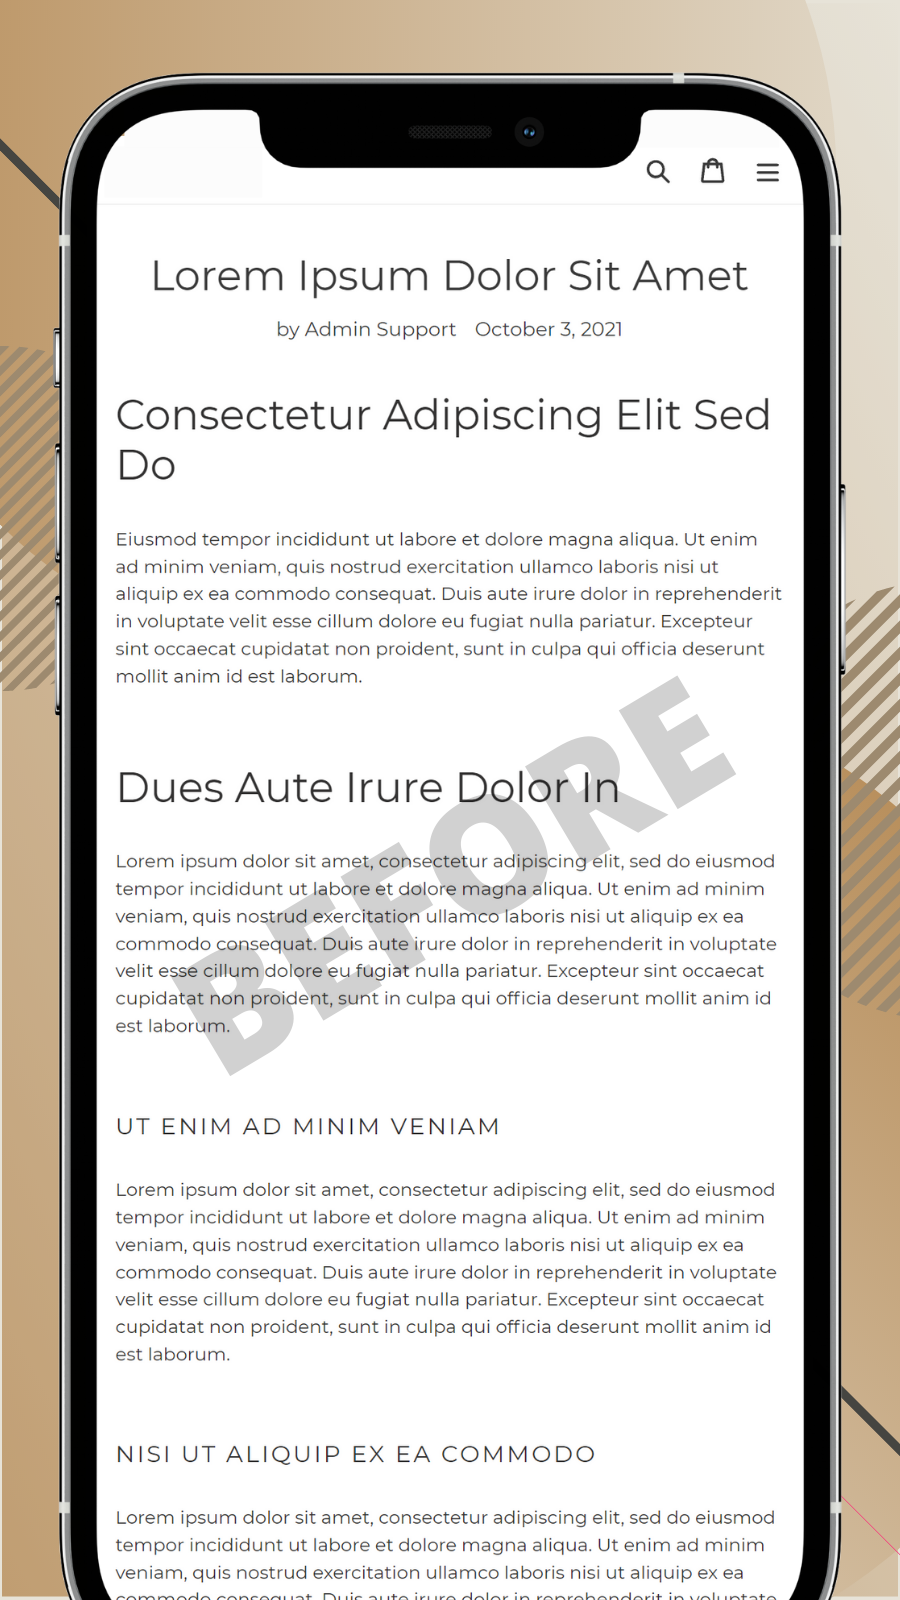 Table of Contents for blog posts on mobile before